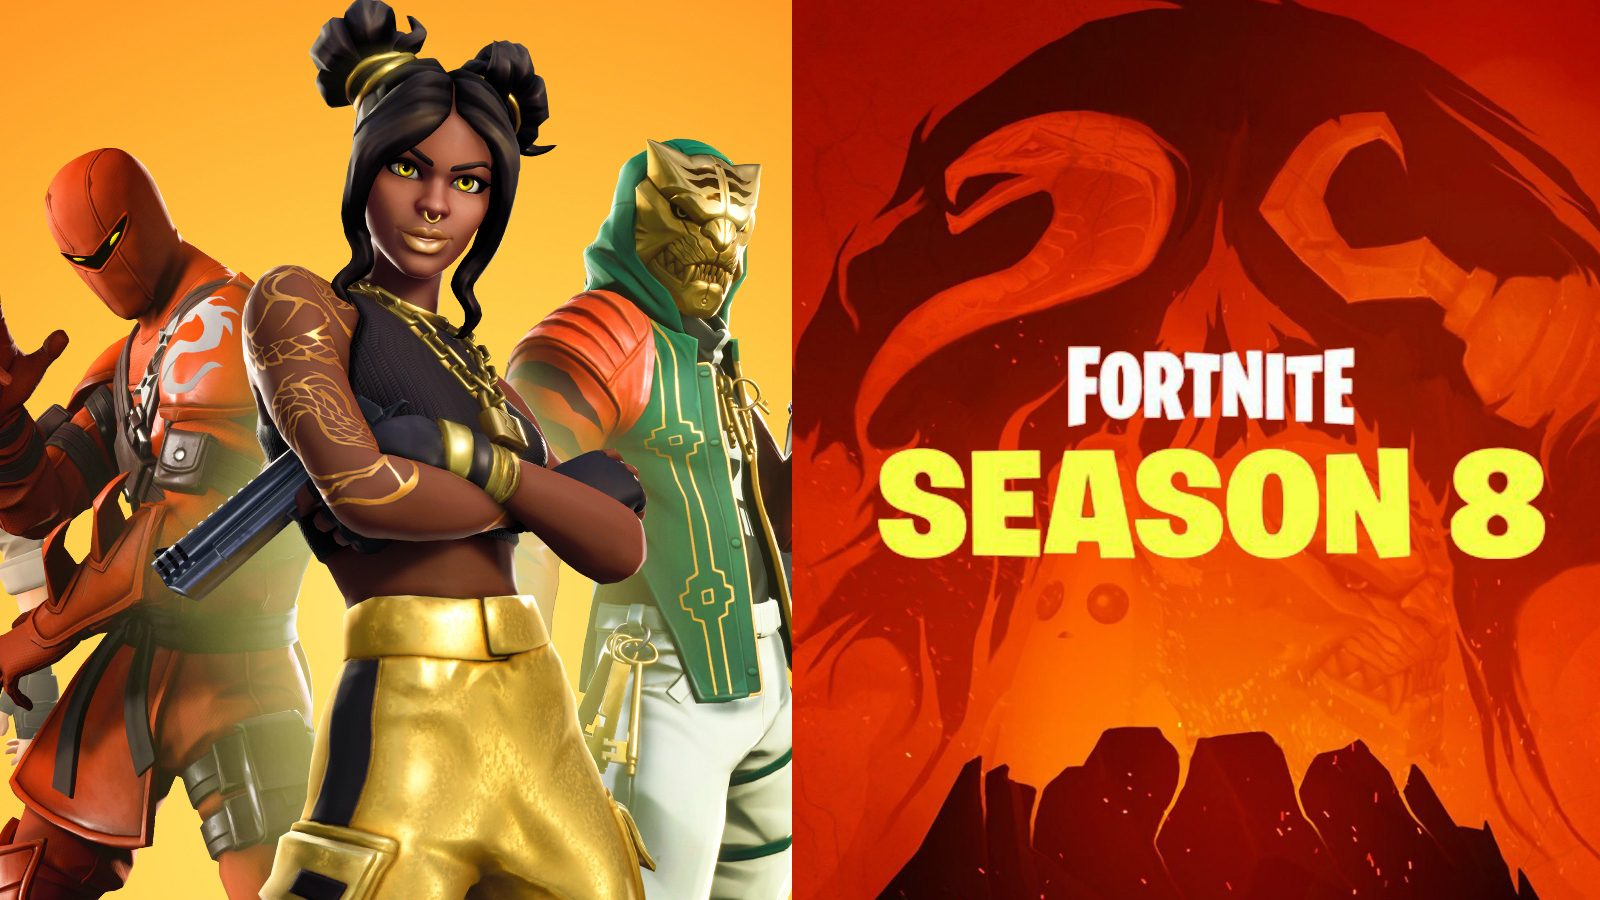 How To Win A Game Of Fortnite Season 8 Fortnite Season 8 Is Coming To A Close And So Are The Challenges Stealth